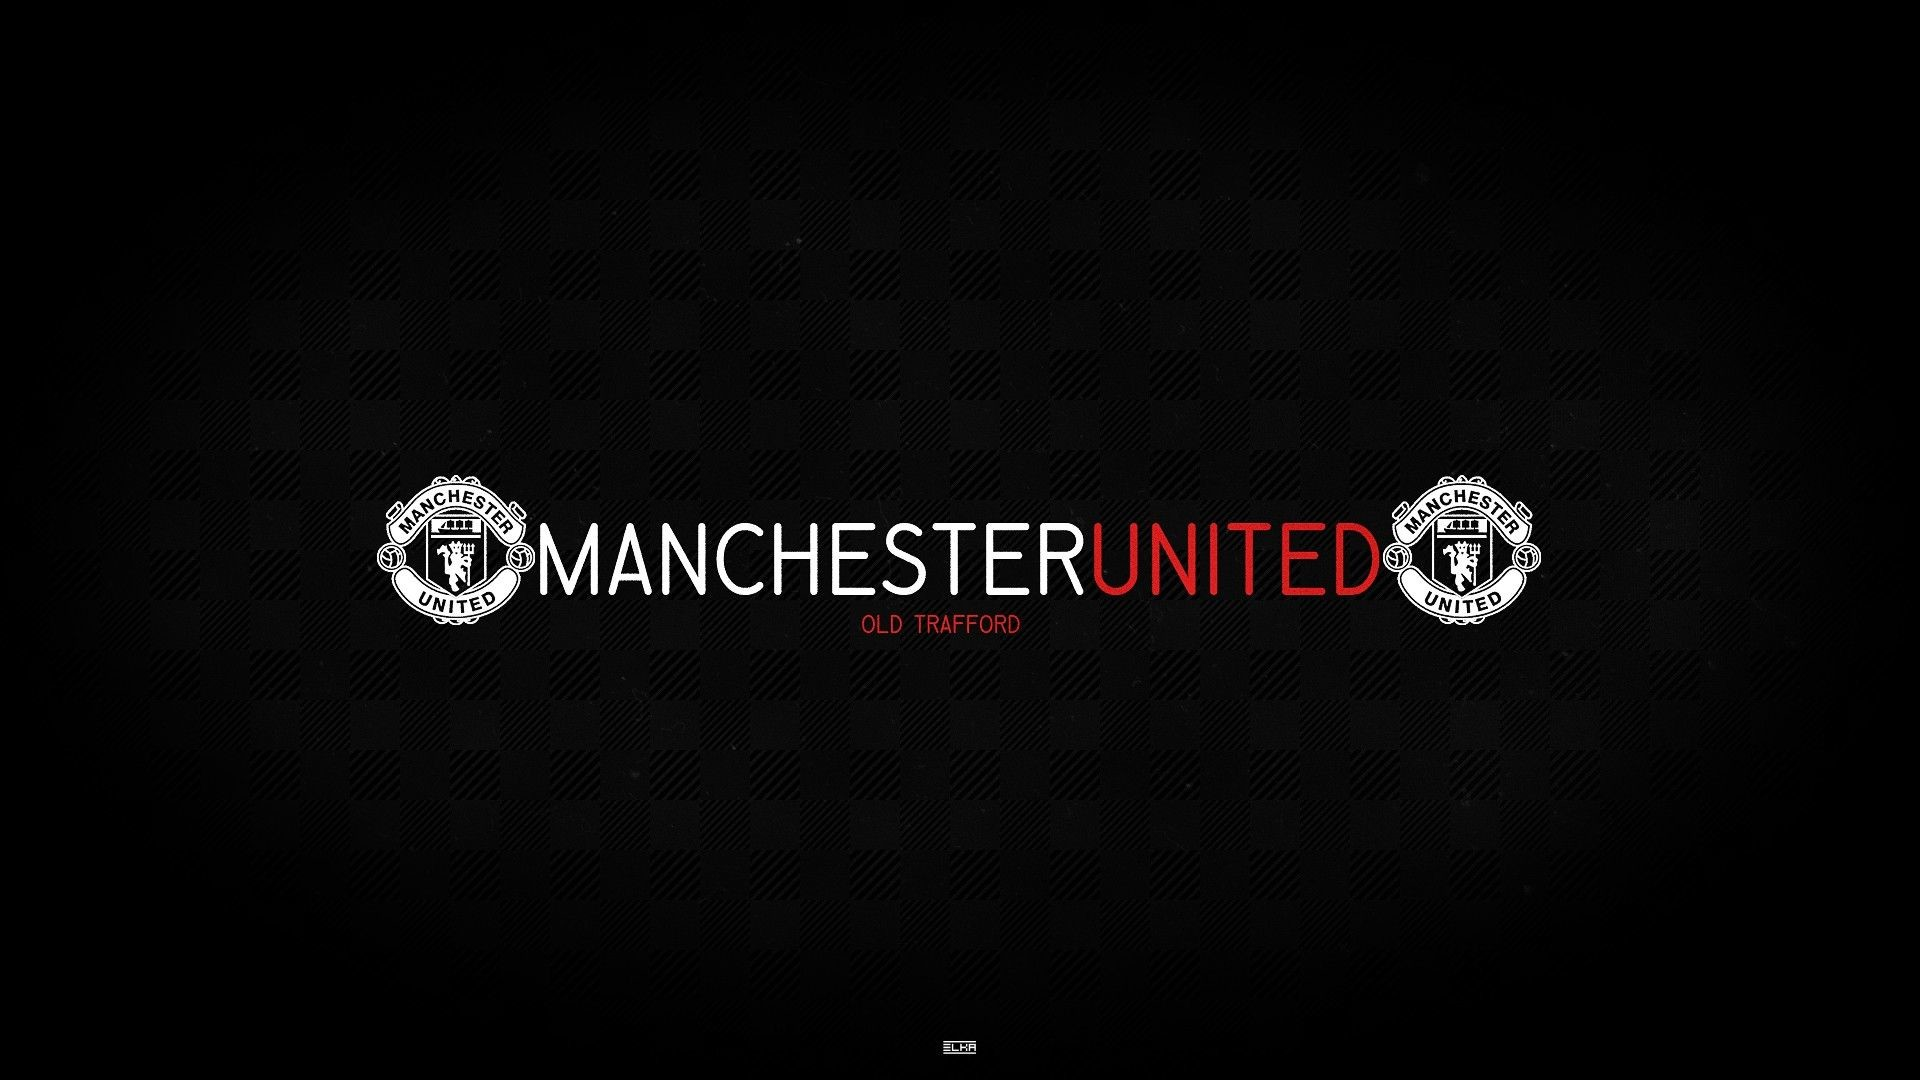 1920x1080 Manchester United Wallpapers HD Wallpaper